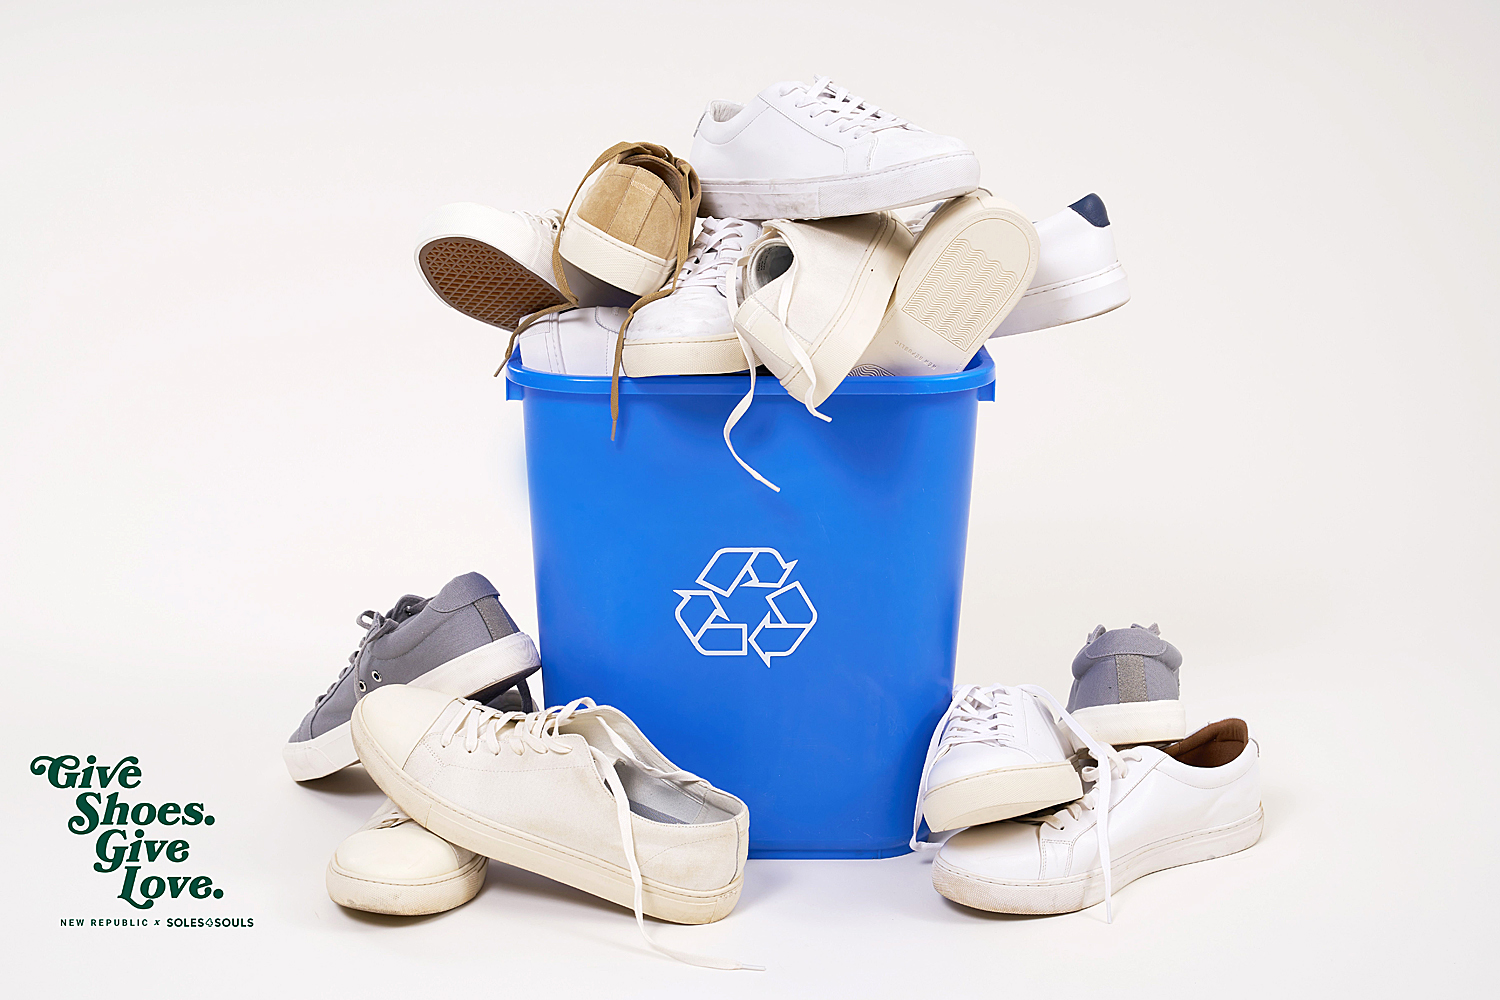 New Republic Is Recycling and Donating Shoes to People in Need